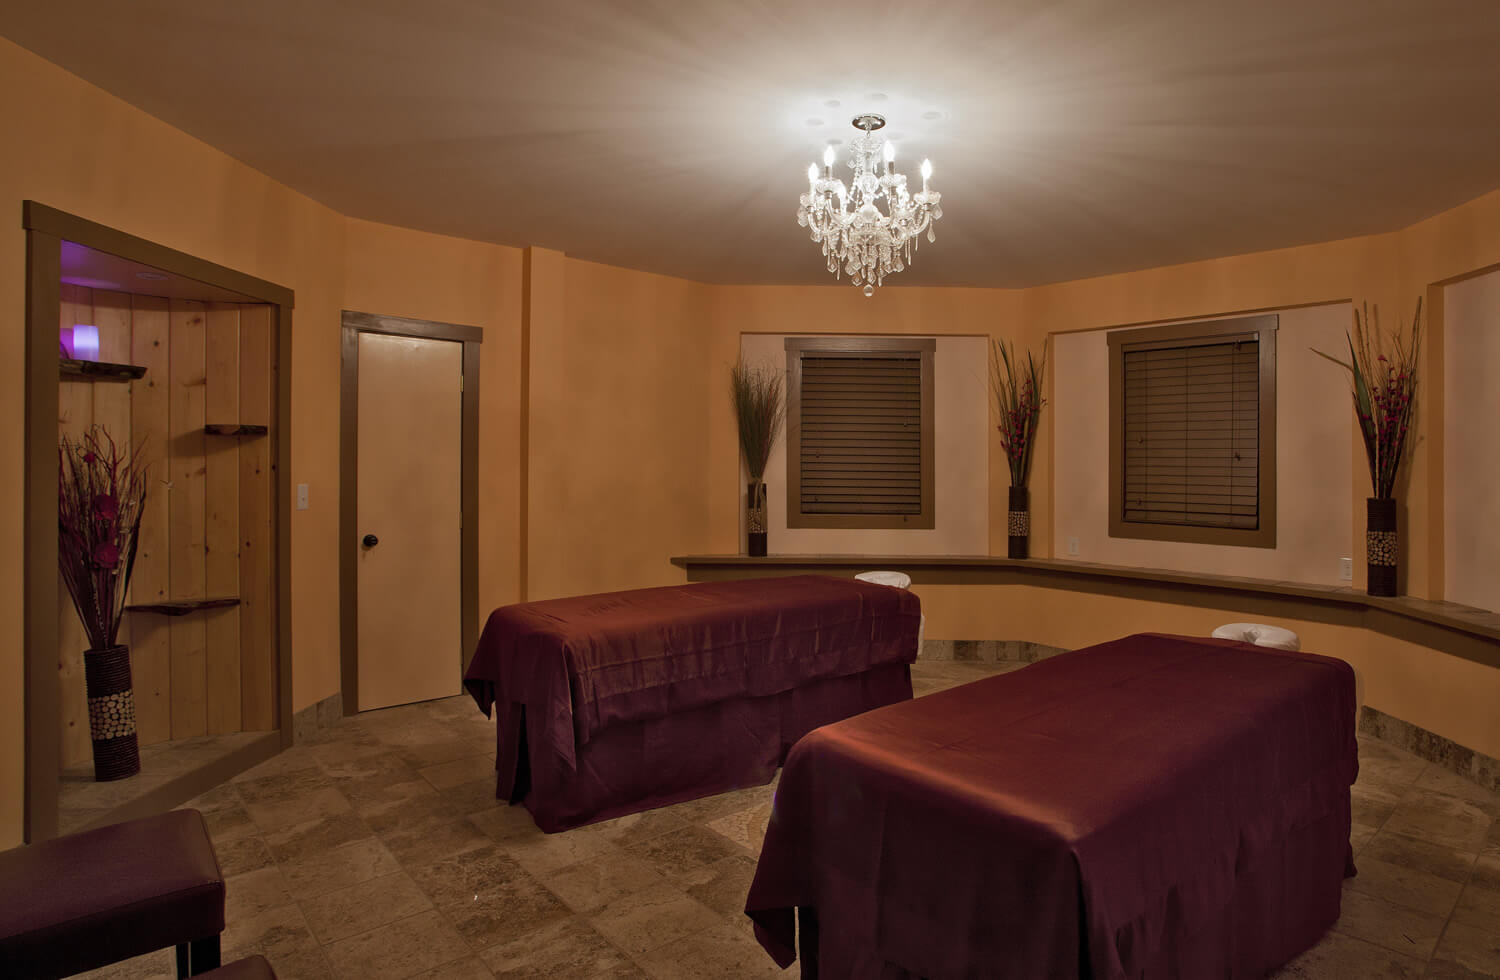 octagonal room with three large windows and chandelier. Two massage tables with burgundy satin sheets are in the middle of the room.